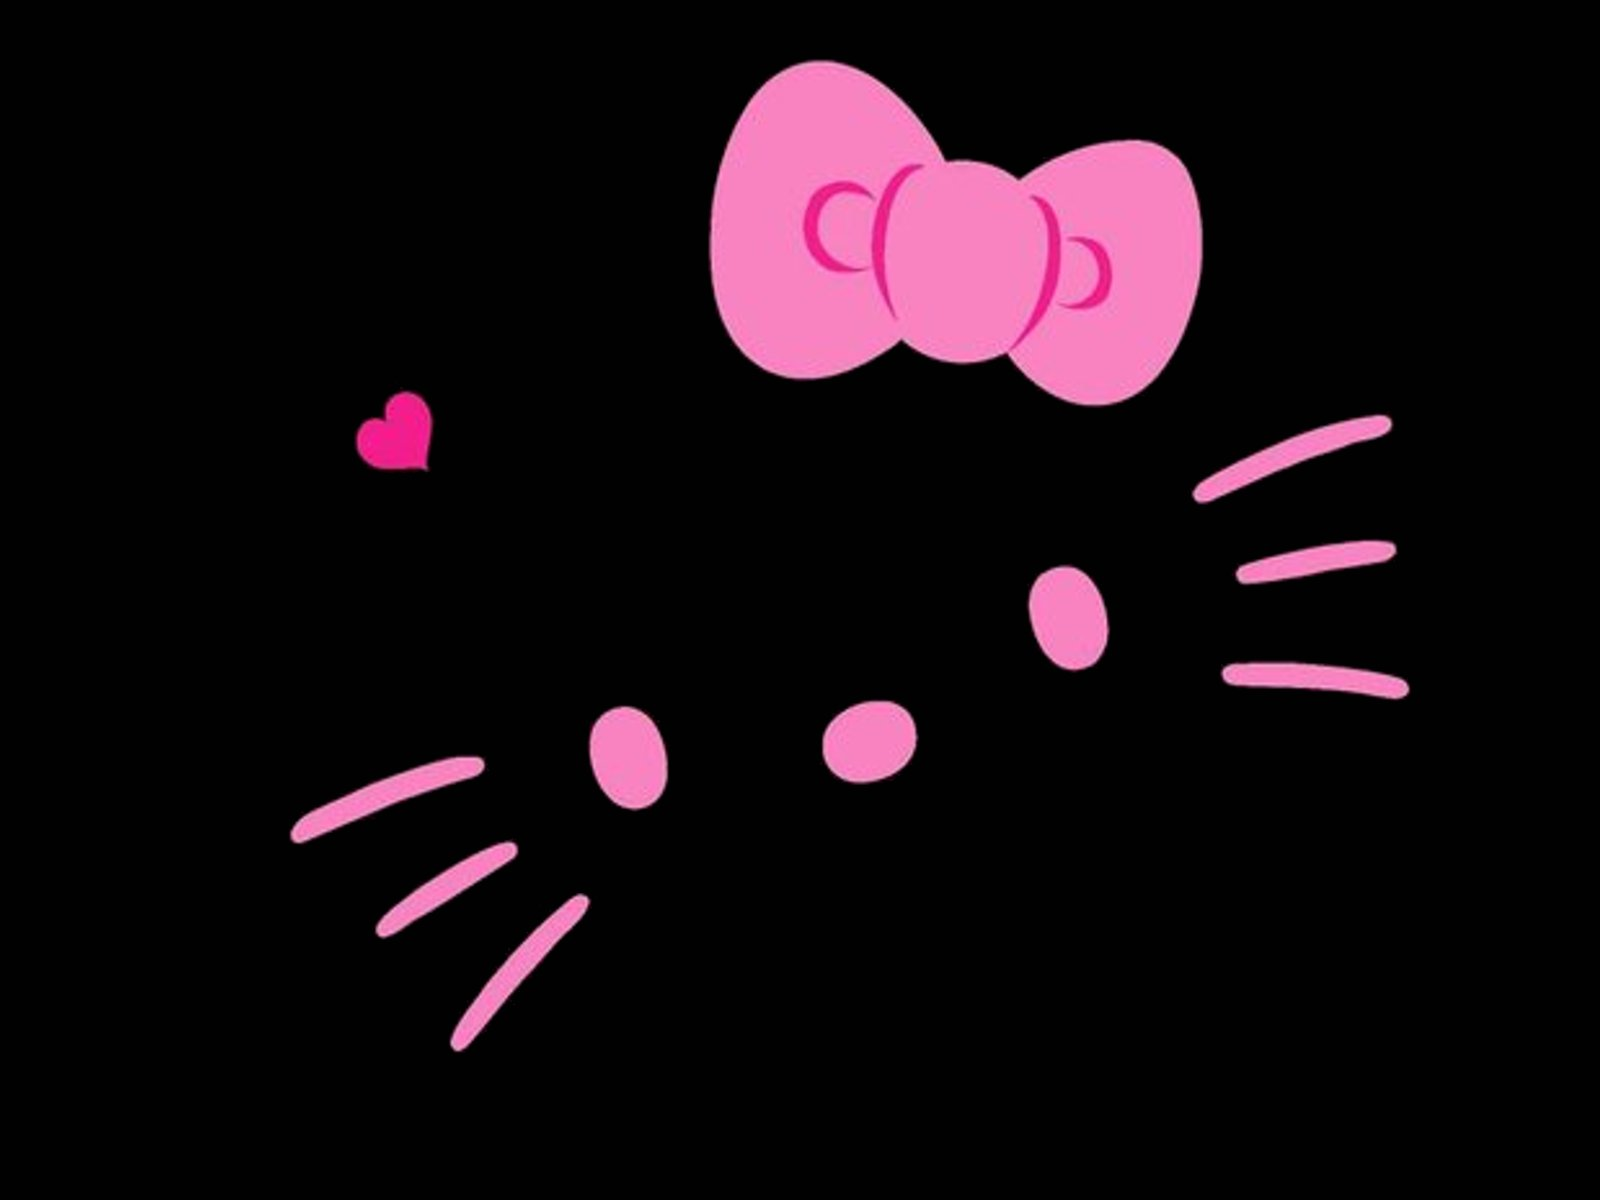 Simple Wallpaper Hello Kitty Iphone 3gs - h3  Picture_154277.jpg